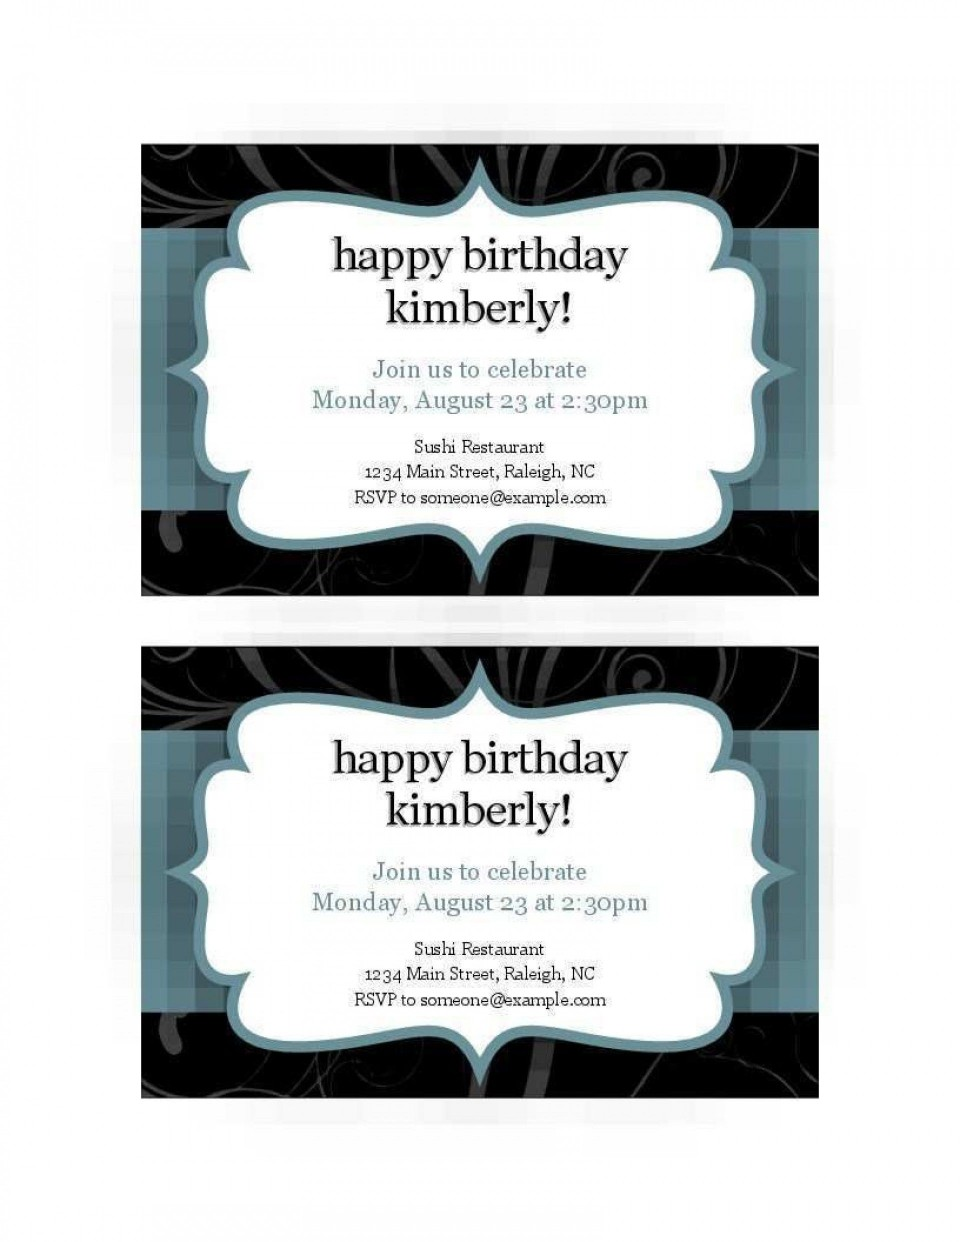 008 Excellent Free Busines Invitation Template For Word Highest Quality 960